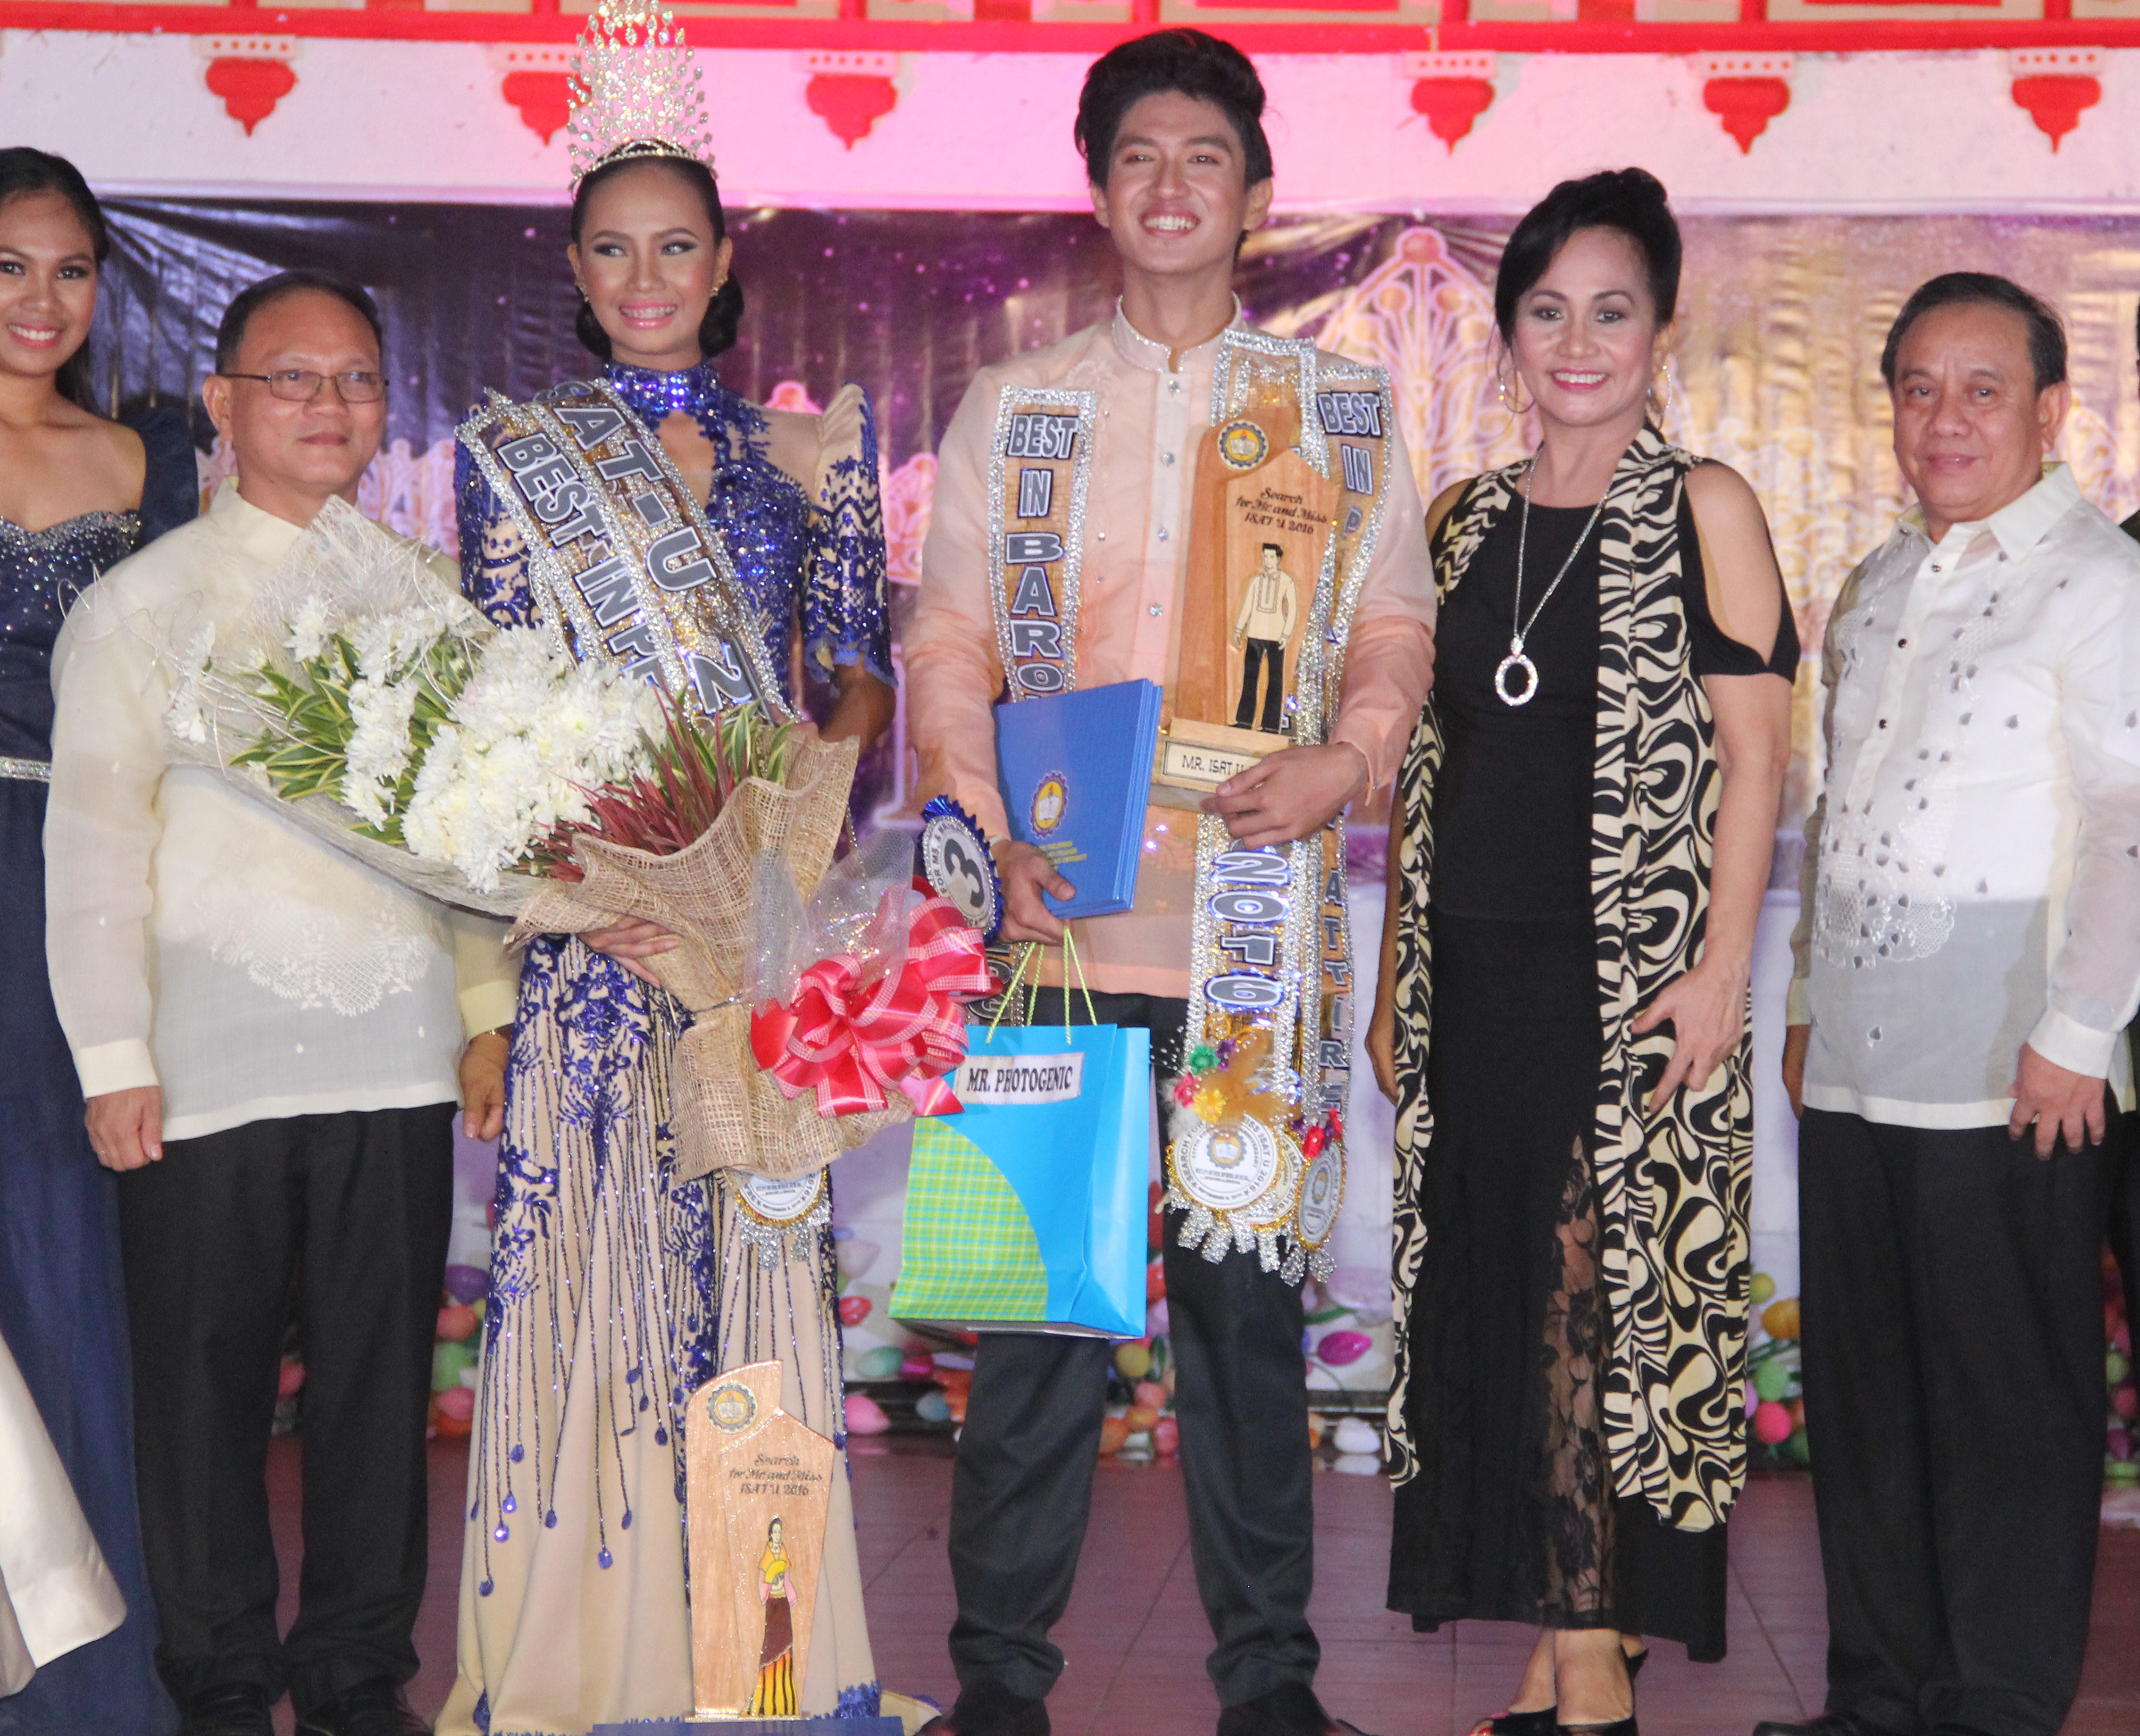 From, left, Dr. Raul F. Muyong , Miss ISAT U 2016 Lynie Rose Rodriquez, Mr. ISAT U 2016 Don Dave Dedios, Dr. Nehema K. Misola, Dr. Manuel A Sanchez, Jr. pose before the camera after the awarding ceremony.